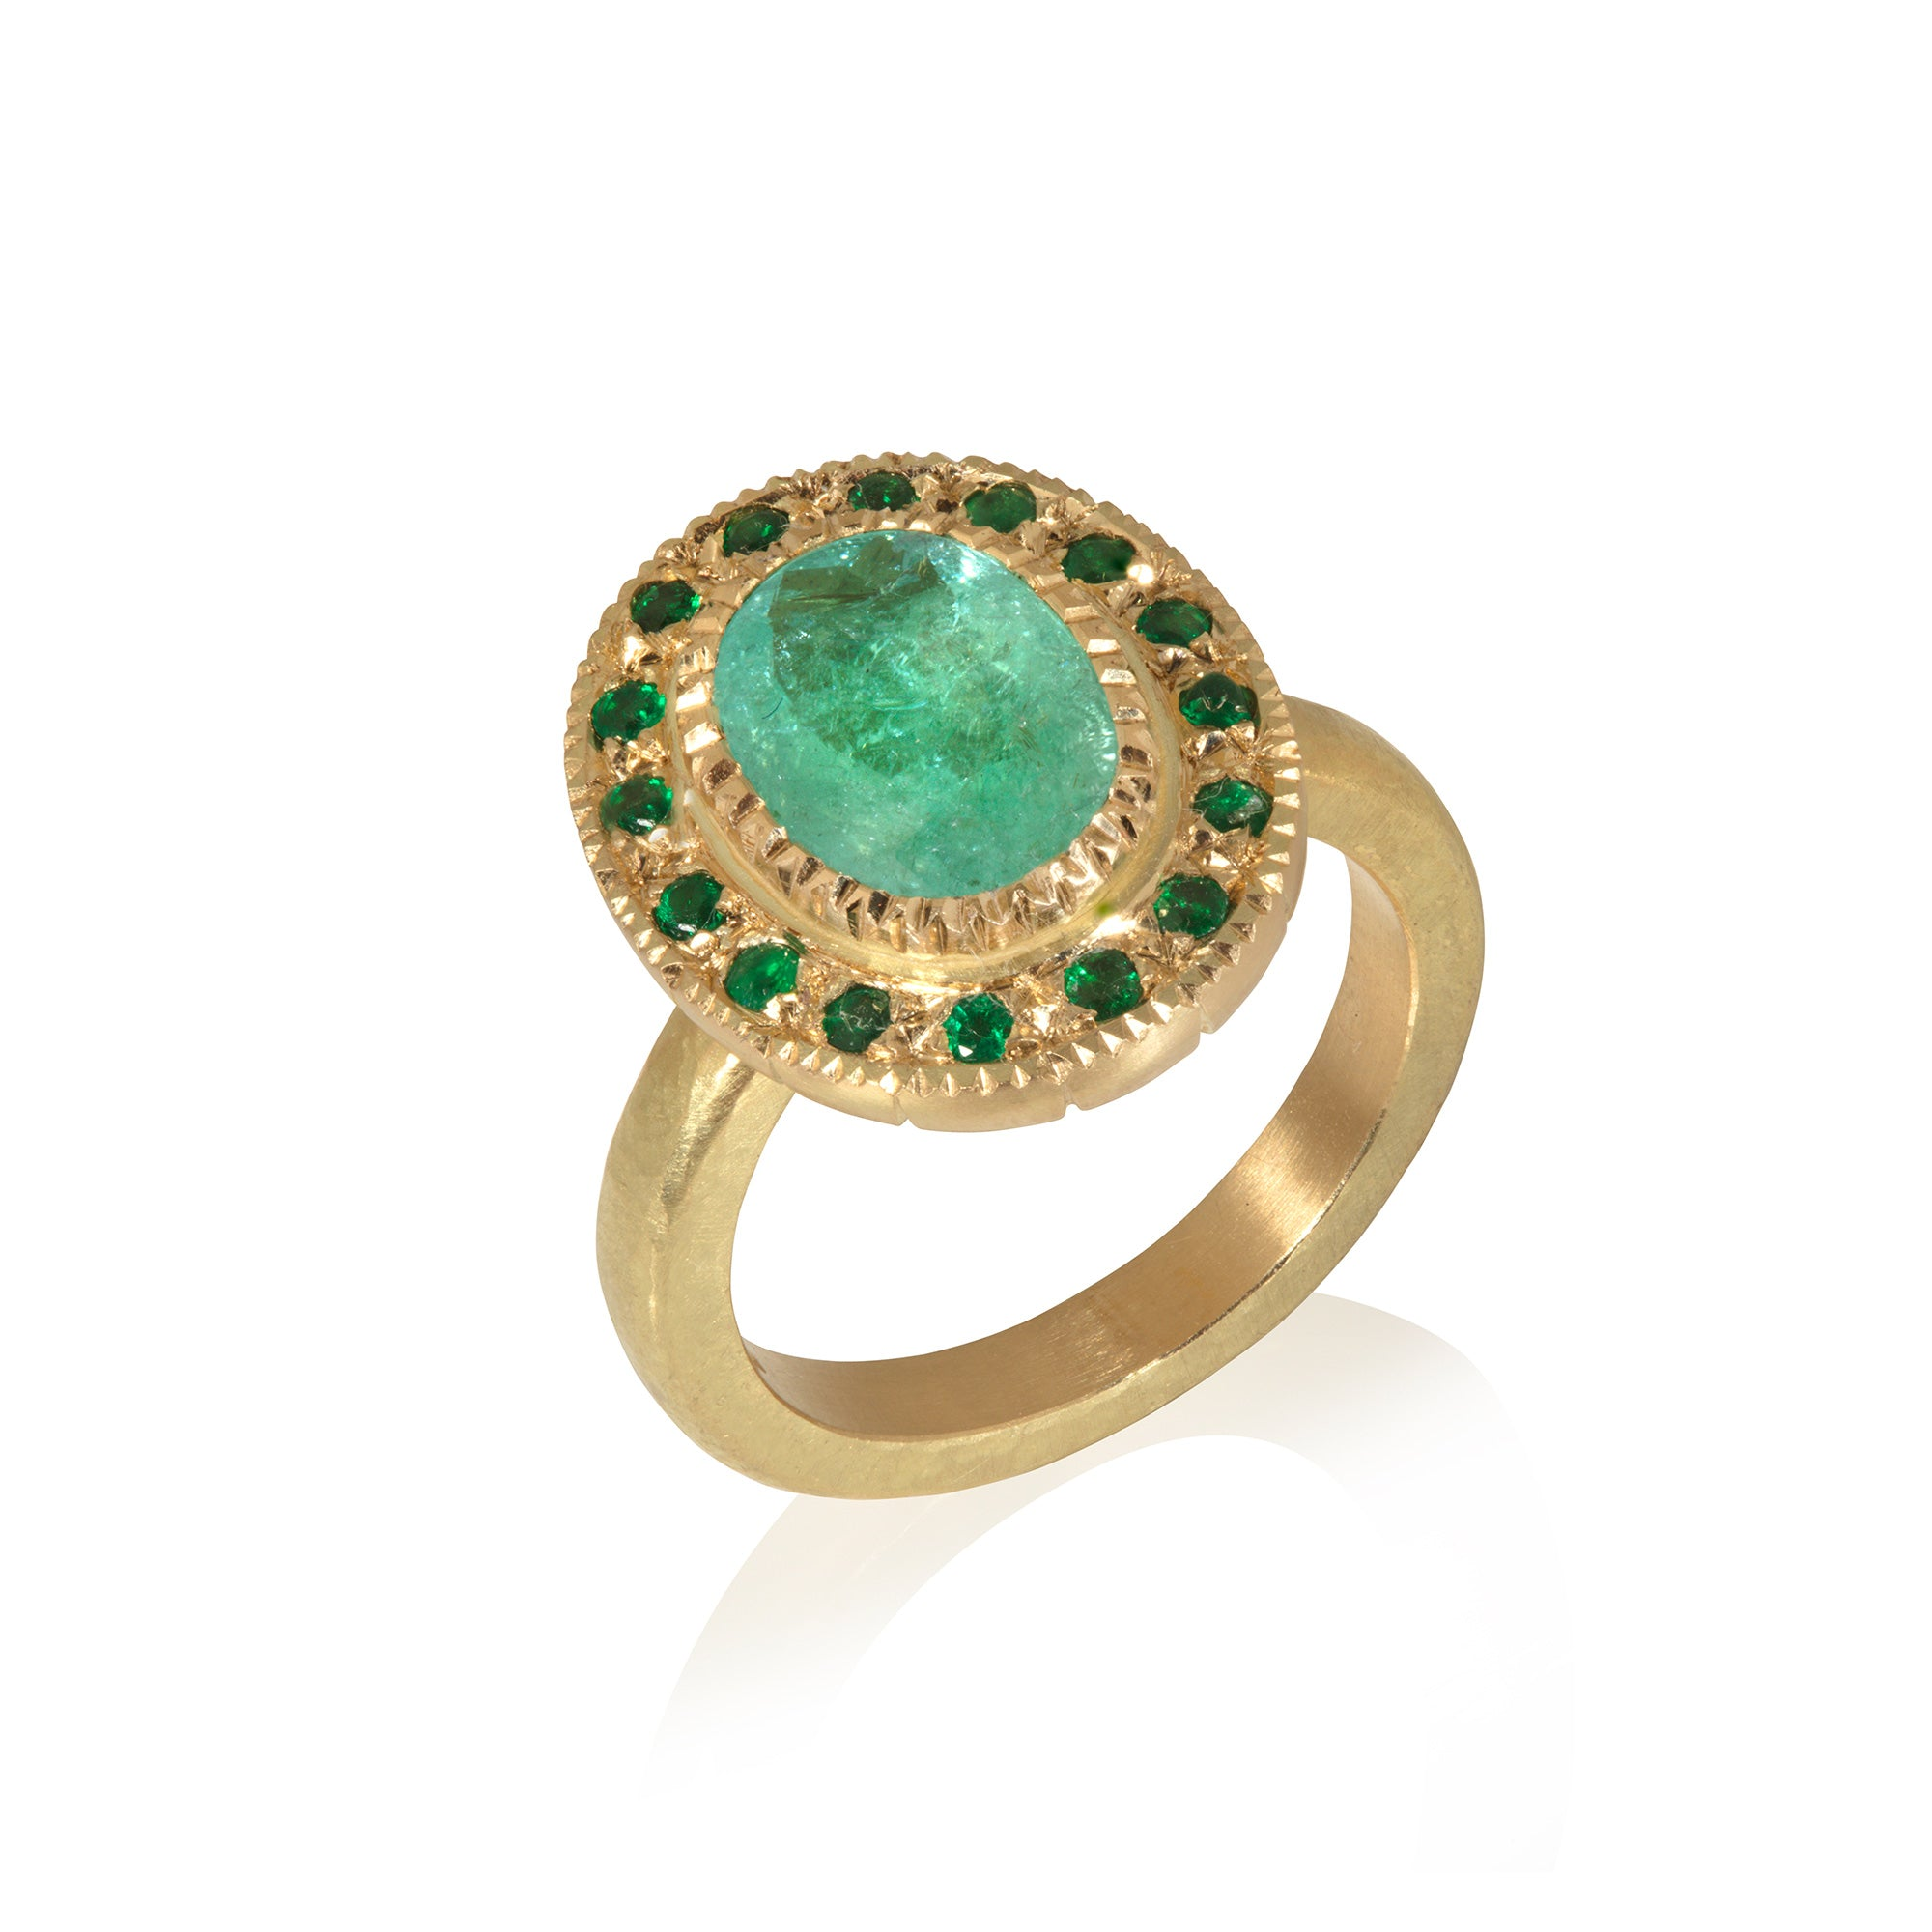 Paraiba tourmaline and emerald ring on white background